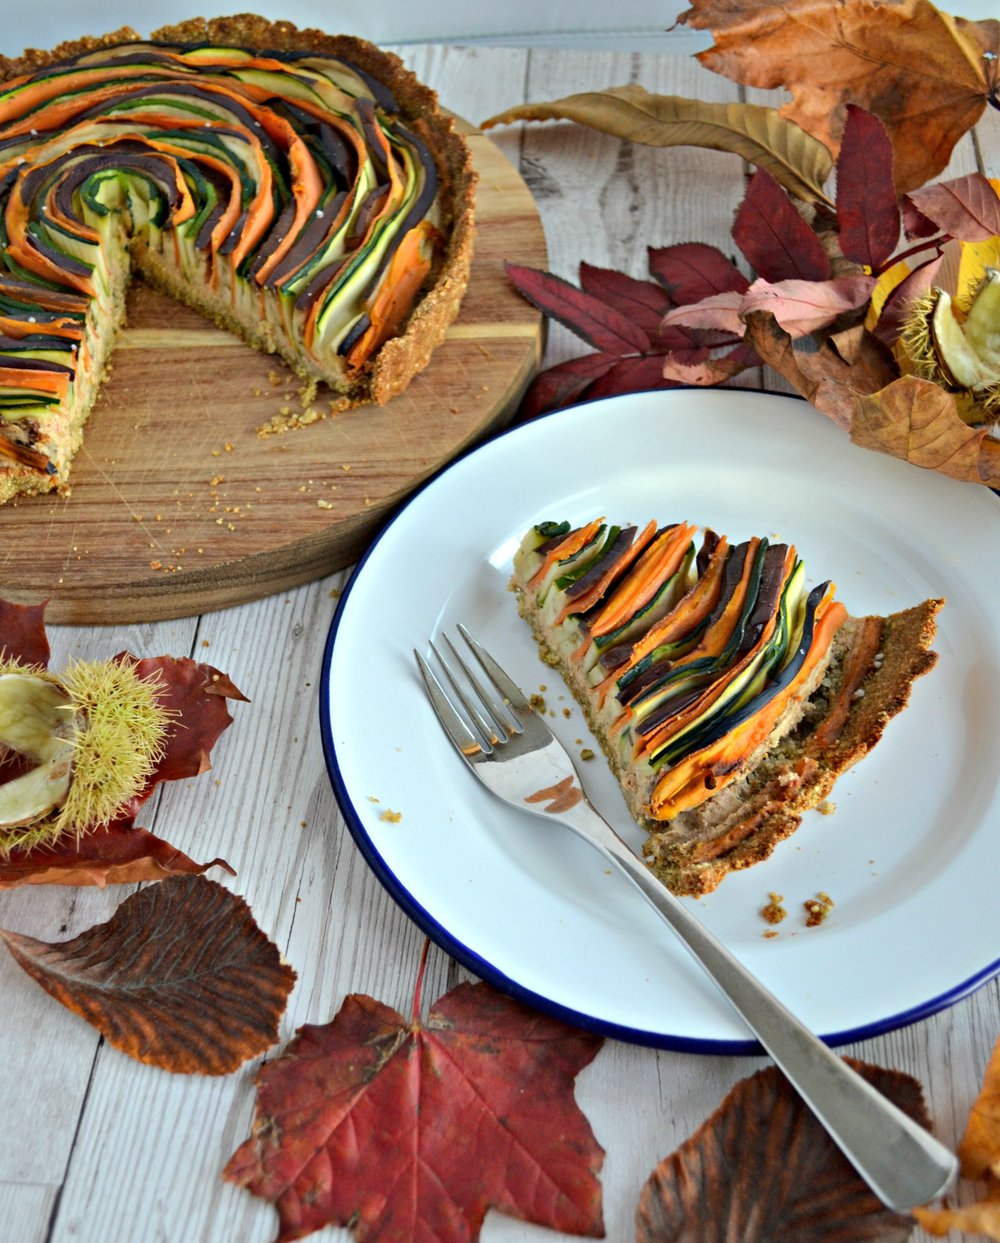 Vegetable vegan spiral tart | The Flourishing Pantry